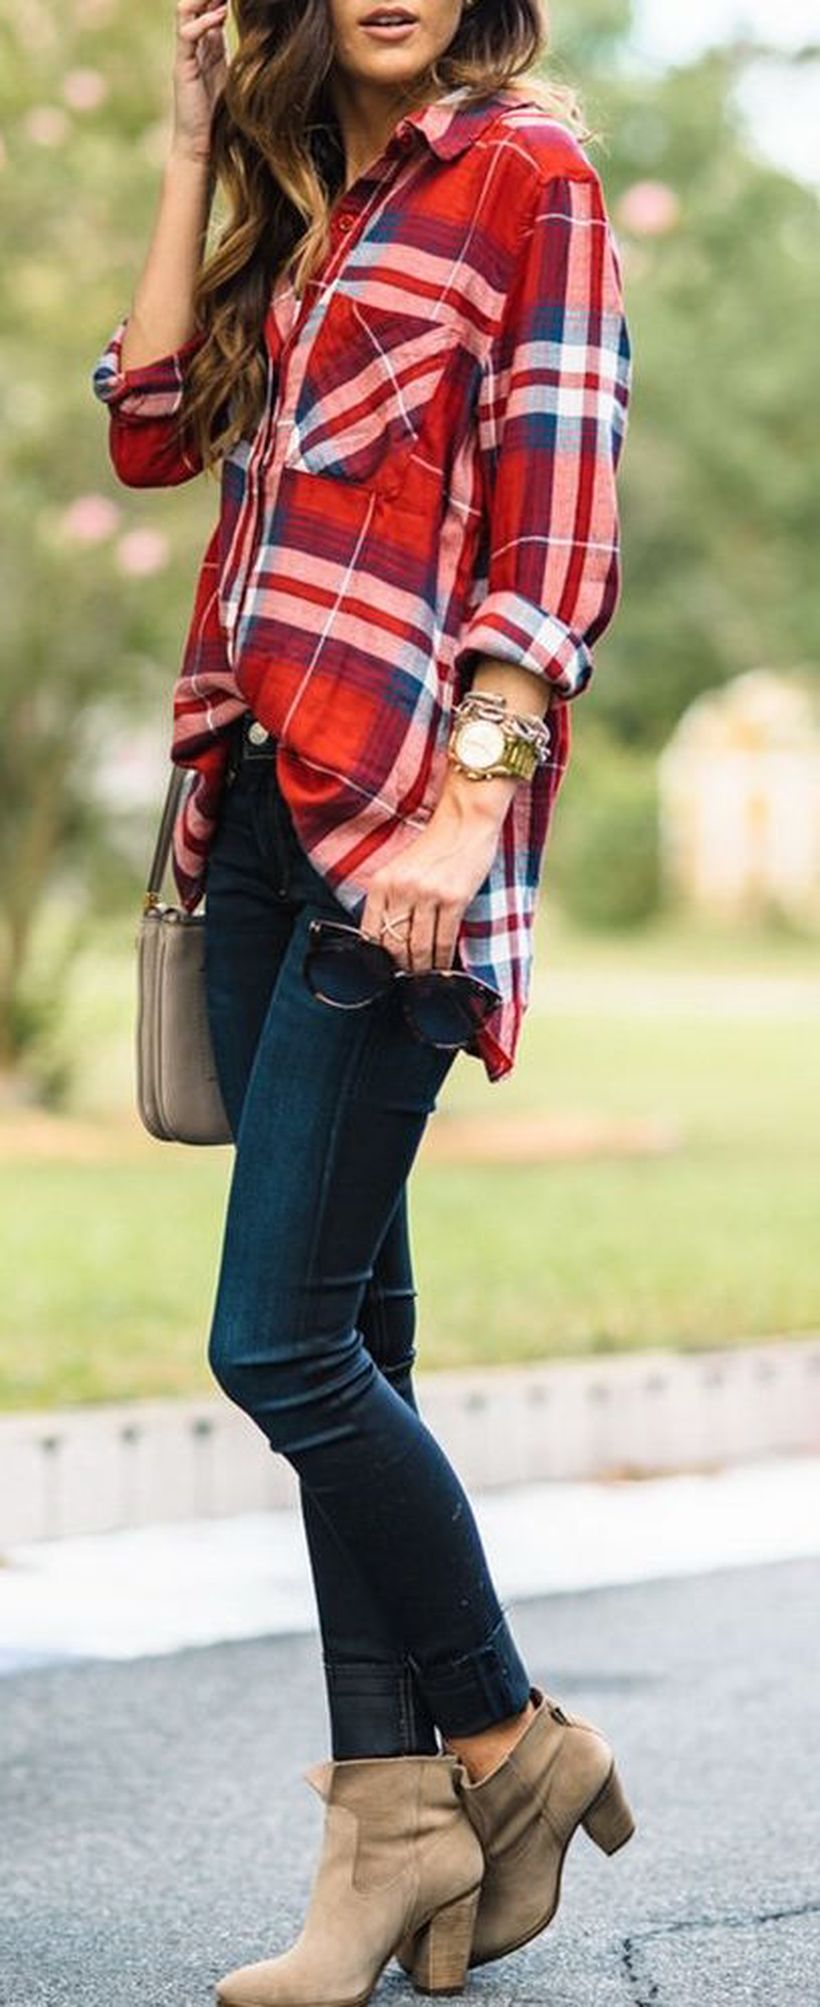 Casual fall fashions trend inspirations 2017 46 - Fashion Best